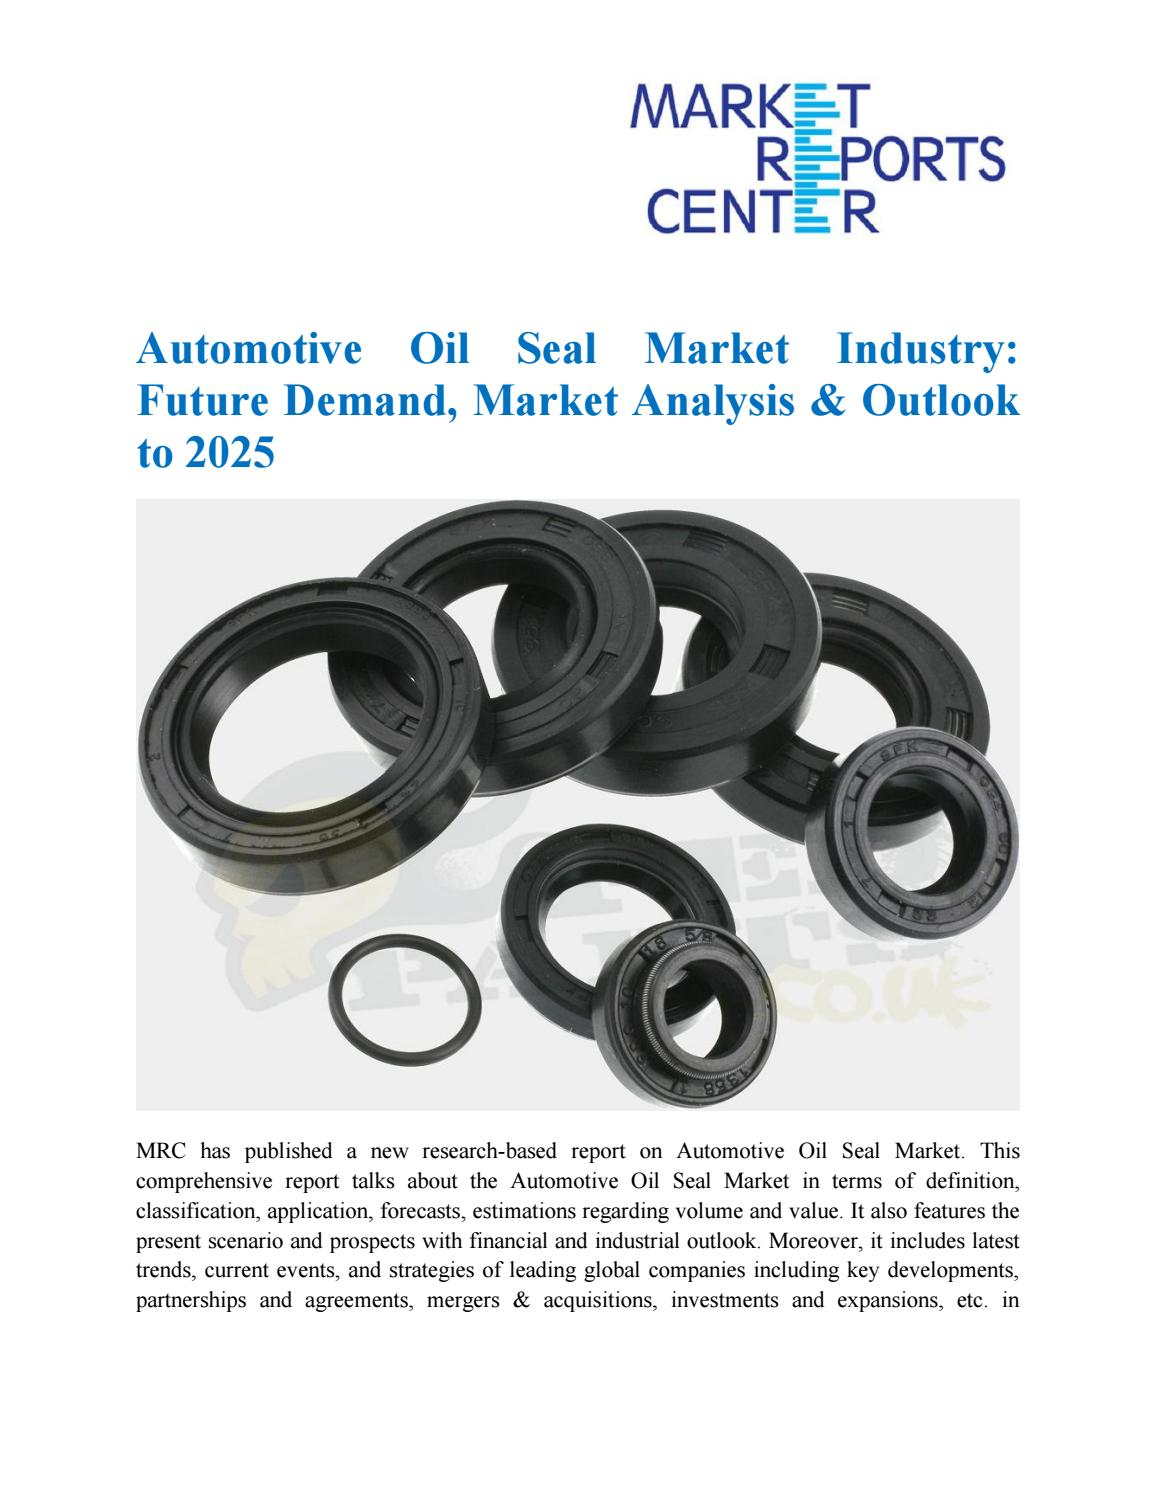 Automotive Oil Seal Market Industry: Future Demand, Market Analysis